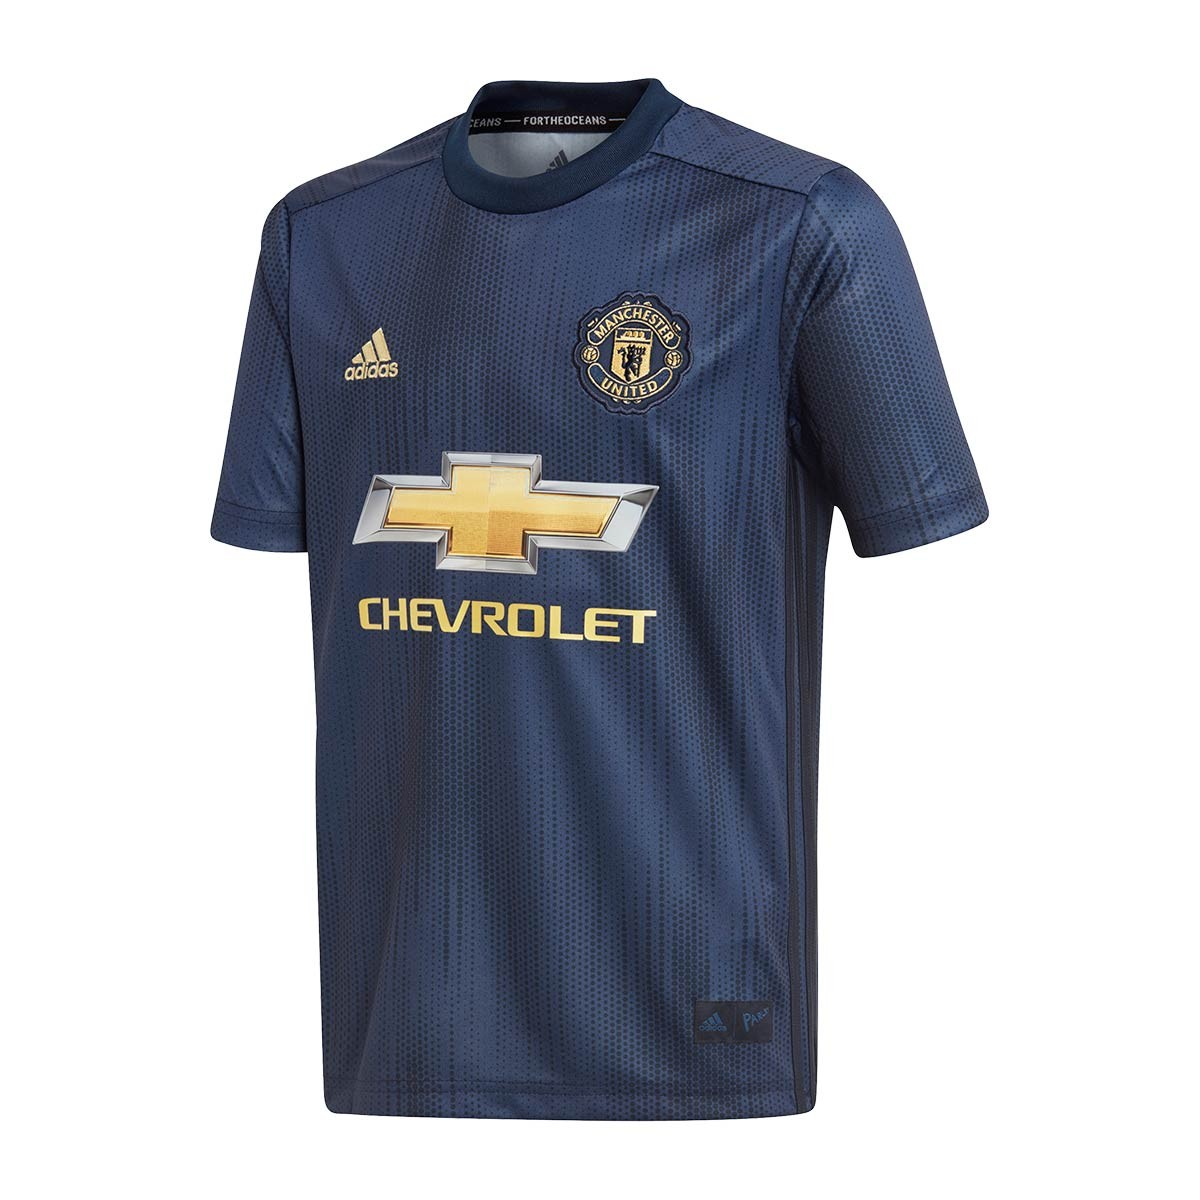 60f19ef7e Jersey adidas Manchester United FC 2018-2019 Third Collegiate navy ...